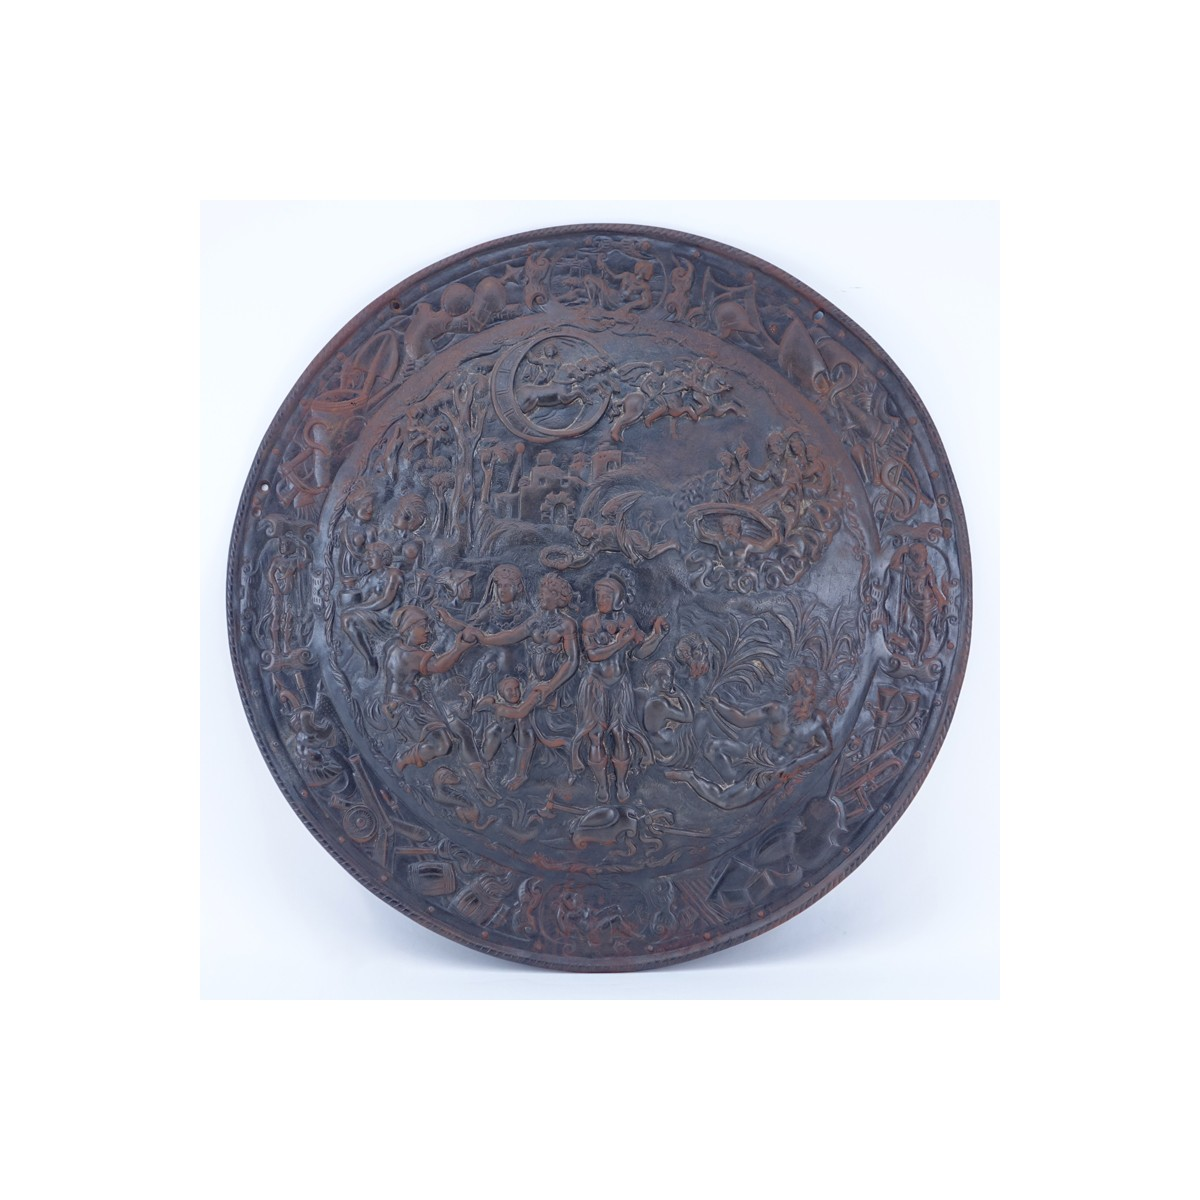 Large Bronze Renaissance Style High Relief Wall Hanging Plaque. Depicts a scene with several figure